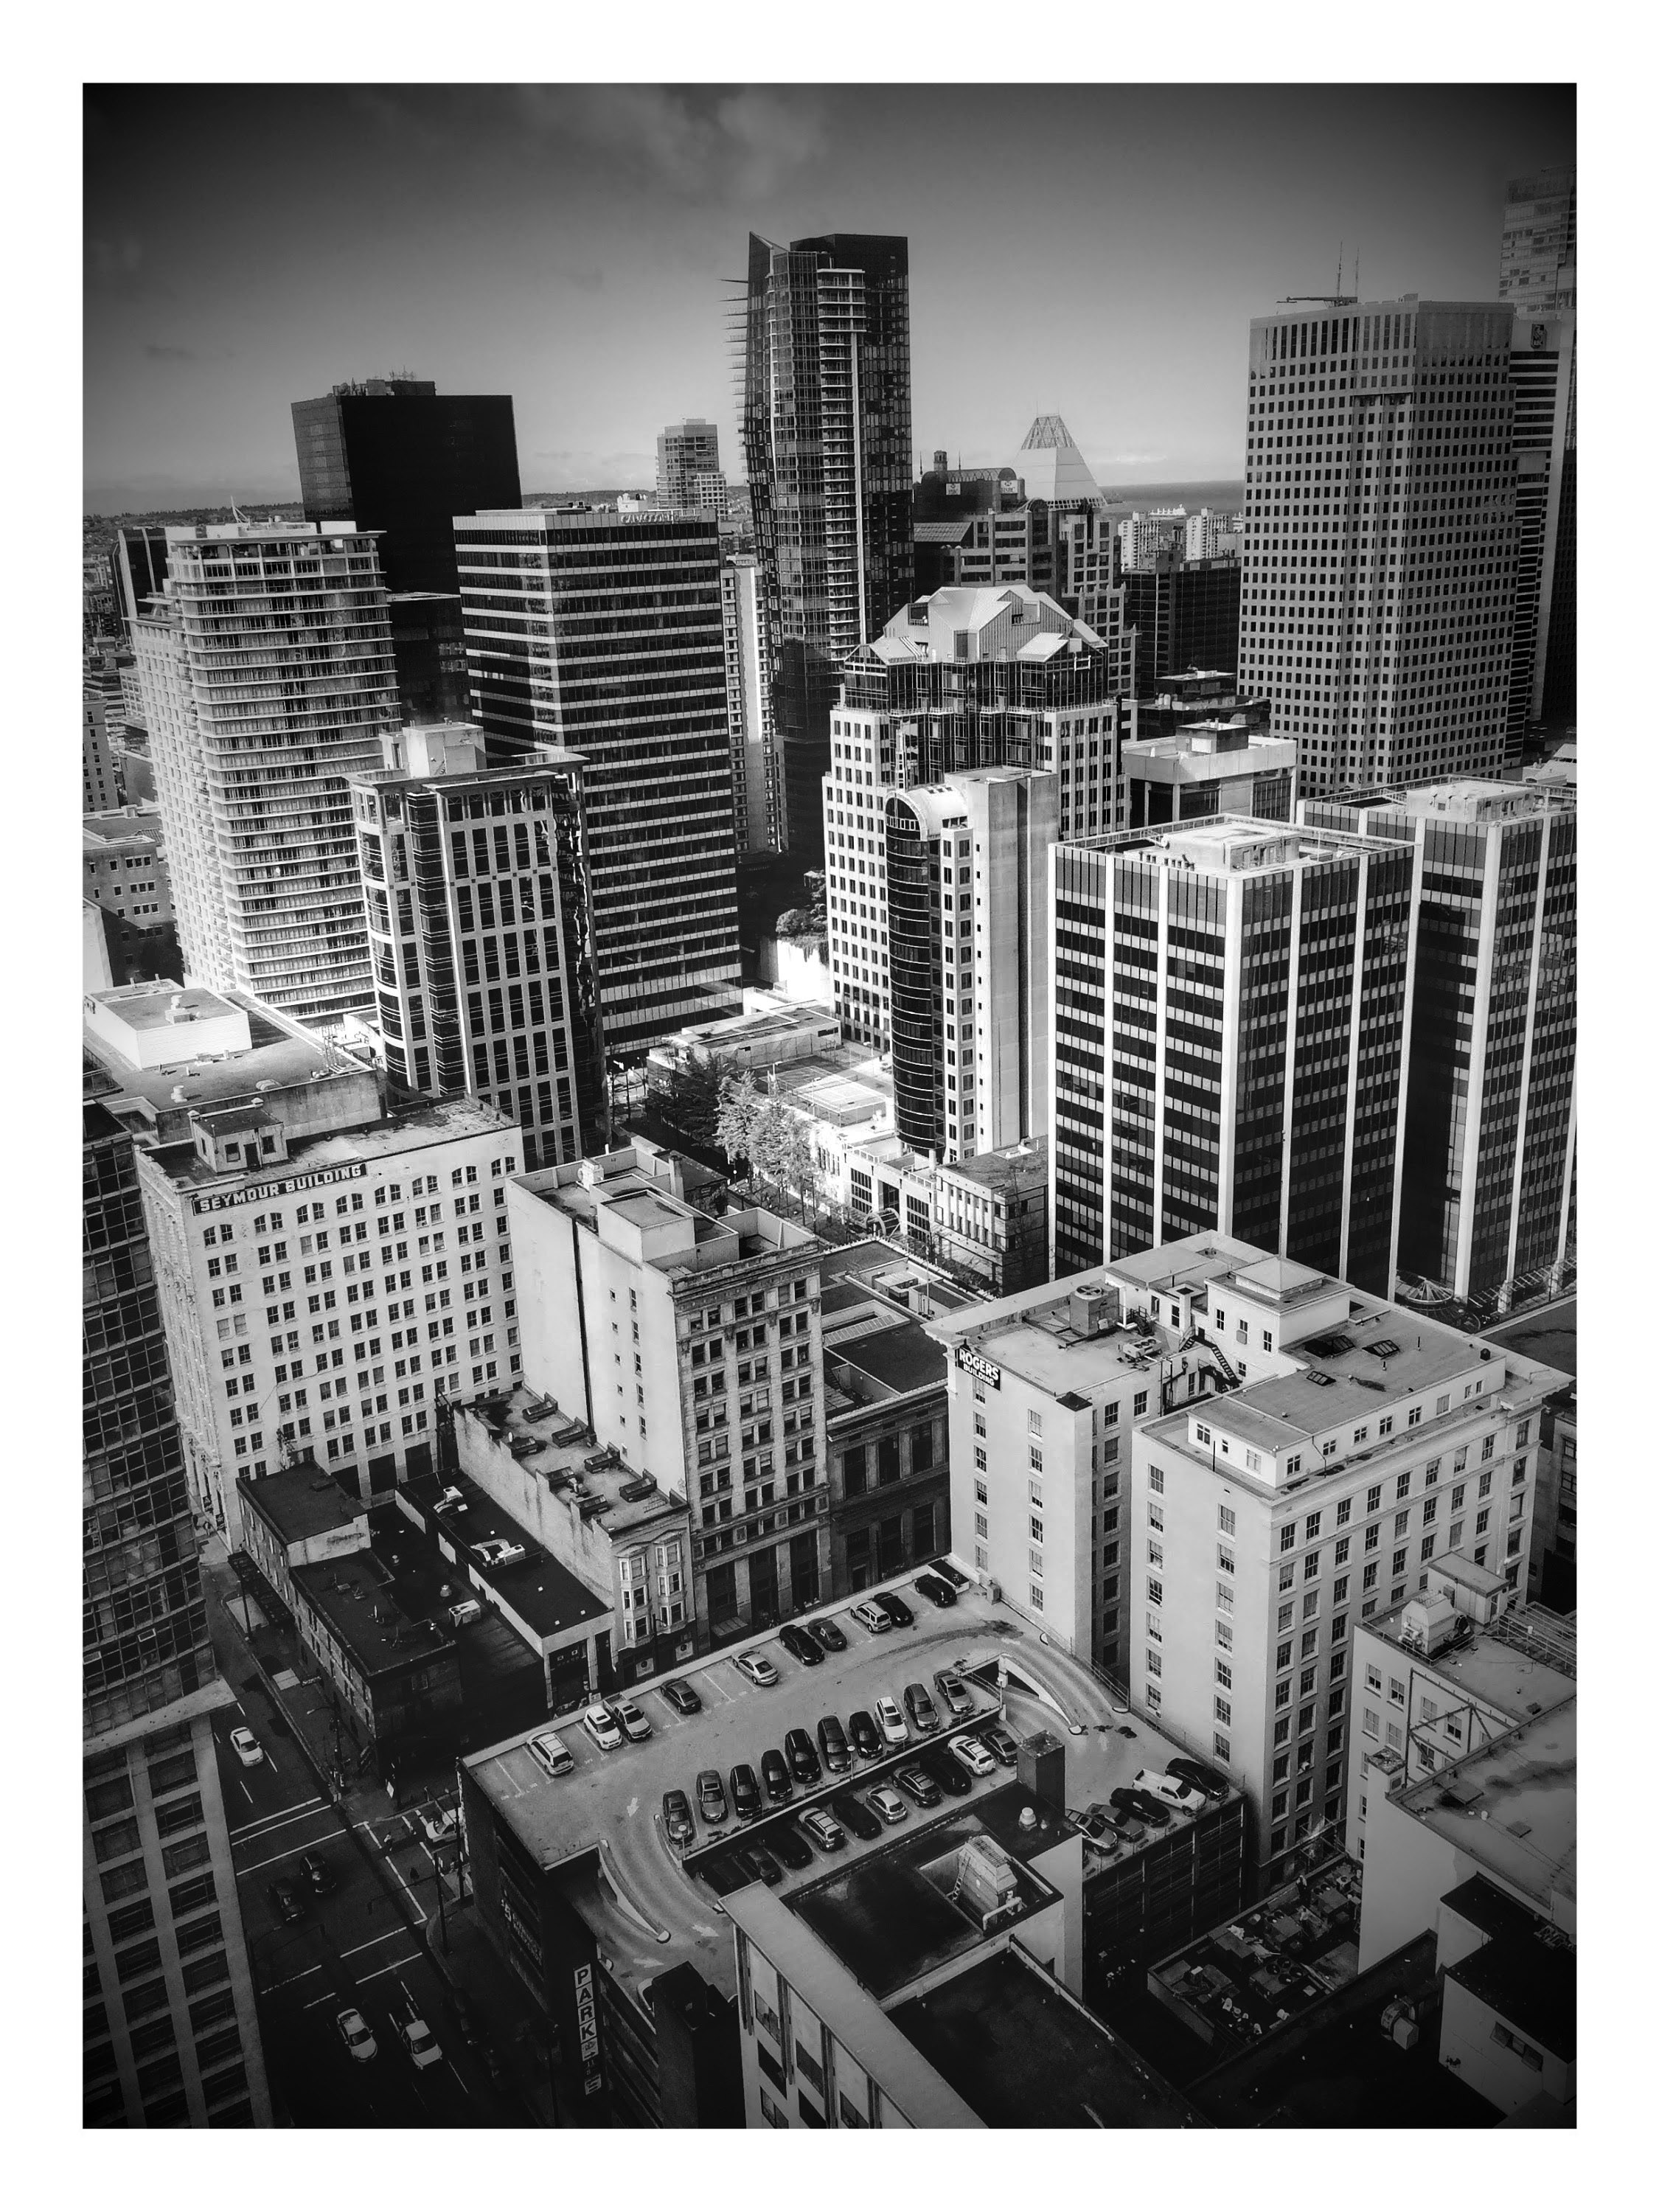 case study of urban structures vancouver bc